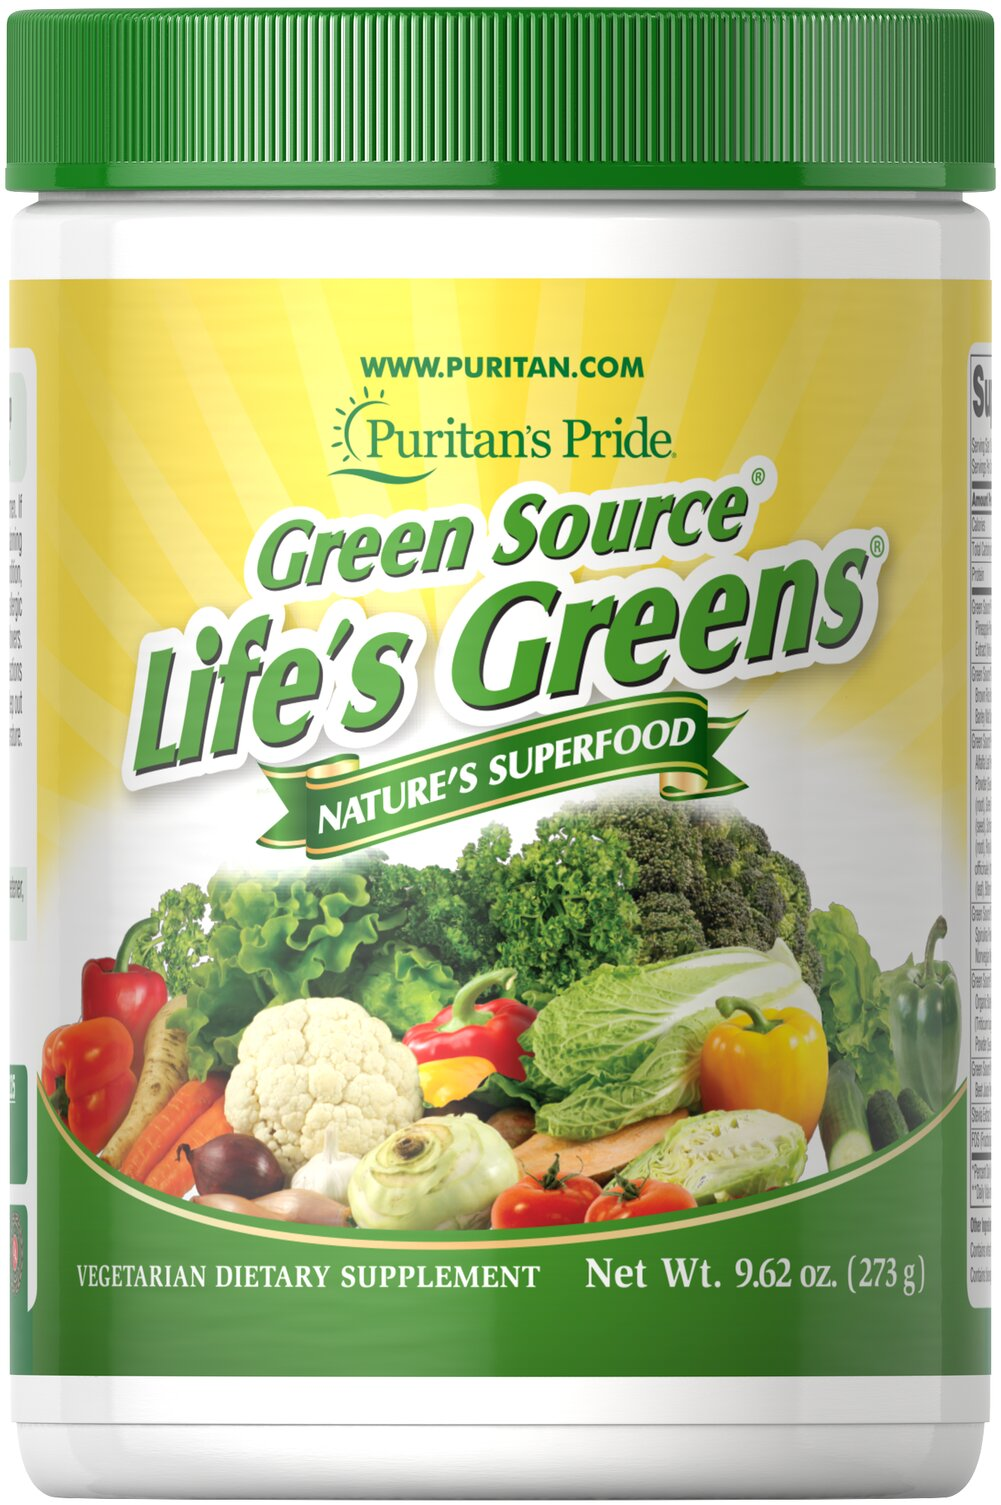 Life's Greens® with Advanced Probiotic Formula <p>With over 35 active ingredients, Life's Greens® powder provides important green factors to give you the optimal edge you need to energize your day.**<p></p>Free Of: Yeast, Preservatives, Artificial Color, Artificial Flavor</p> <p>Oxyphyte® is a registered trademark of RFI Blending LLC.</p> 9.62 oz Powder  $38.99